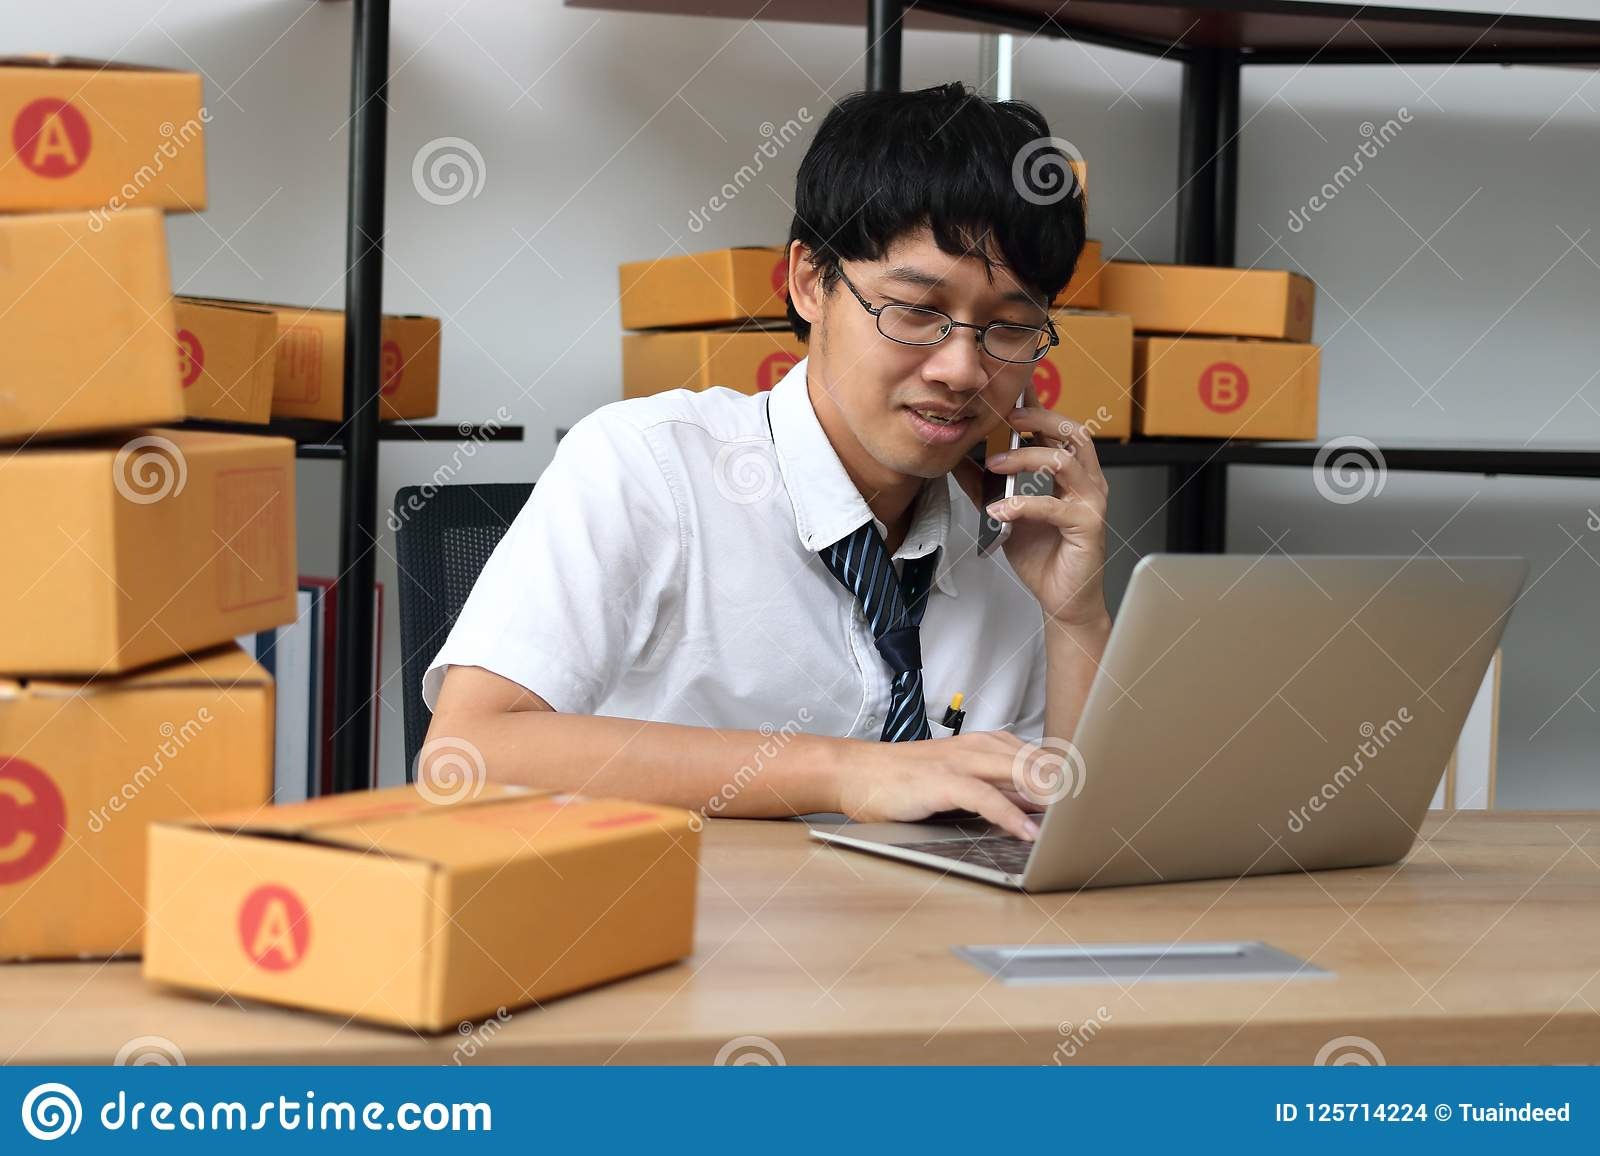 Young Asian entrepreneur owner talking on phone at workplace at home. Start up small business.